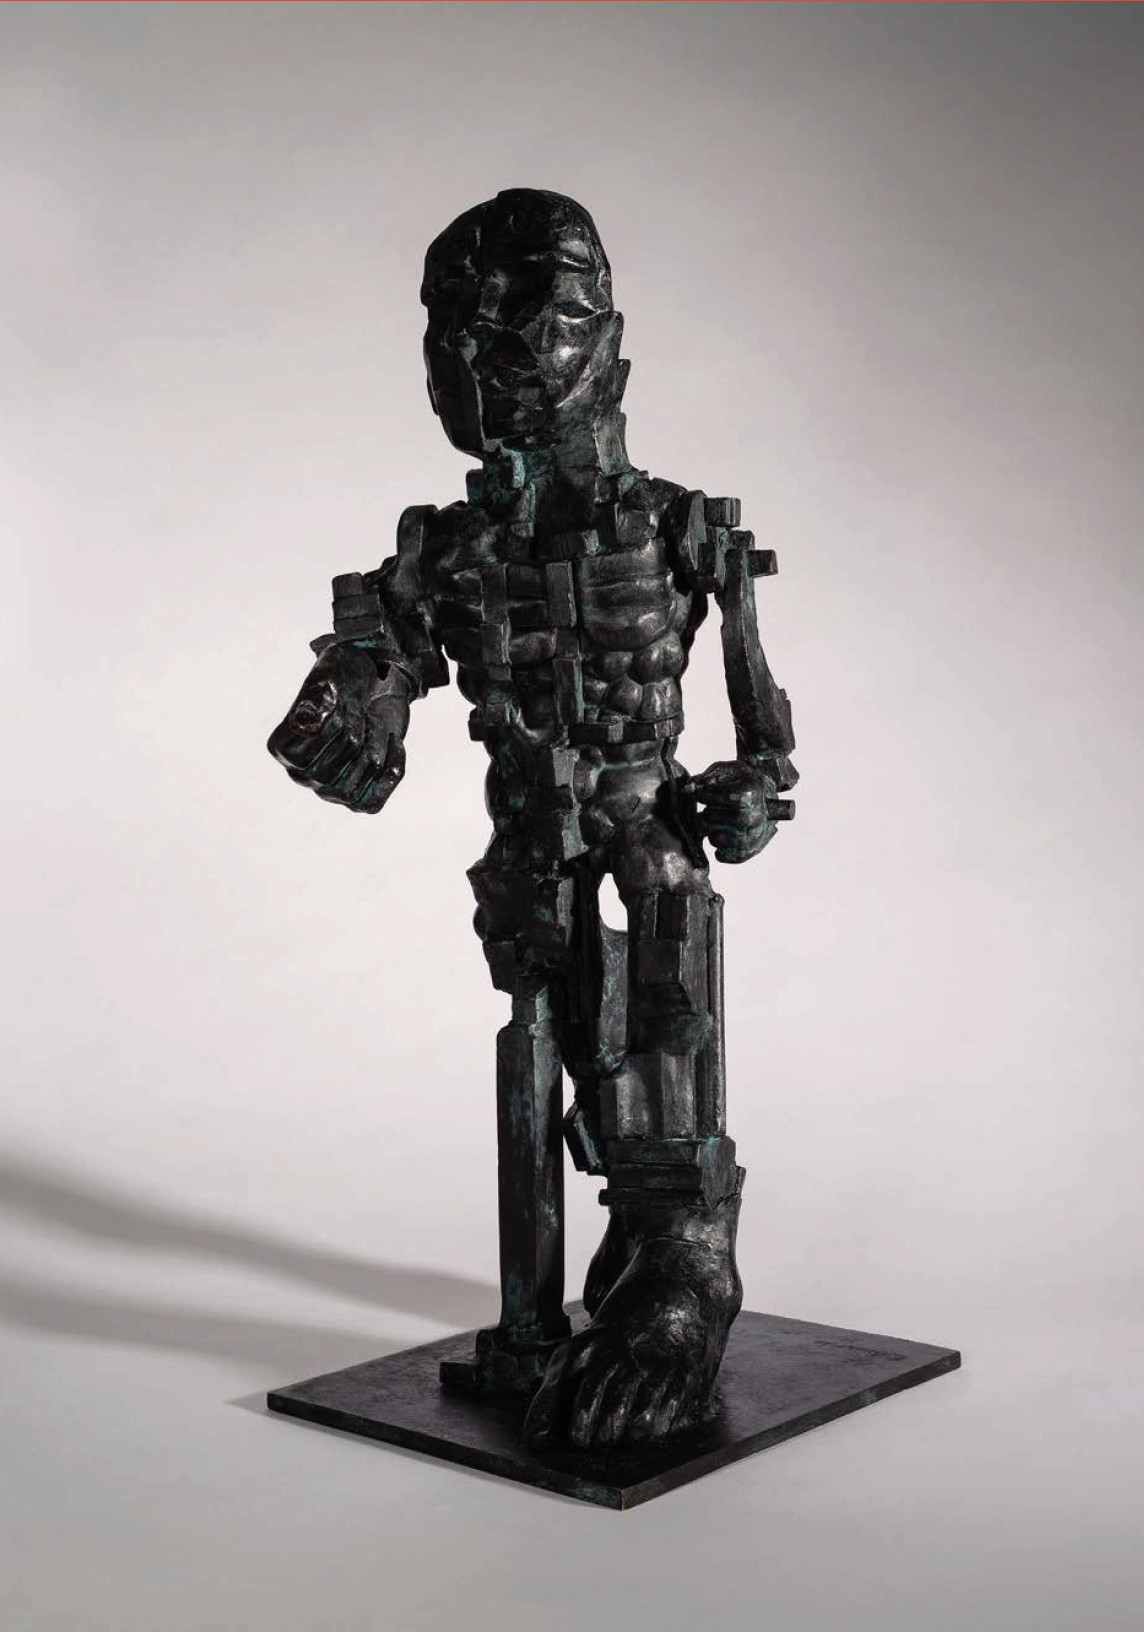 """<span class=""""link fancybox-details-link""""><a href=""""/artists/60-eduardo-paolozzi/works/401/"""">View Detail Page</a></span><div class=""""artist""""><strong>Eduardo Paolozzi</strong></div> <div class=""""title""""><em>Vulcan</em>, 1998</div> <div class=""""signed_and_dated"""">signed (inscribed) 'Paolozzi' a/c<br /> </div> <div class=""""medium"""">Bronze - a/c (after edition of 2)</div> <div class=""""dimensions"""">60.5 x 24 x 29cm</div><div class=""""copyright_line"""">Copyright The Artist</div>"""